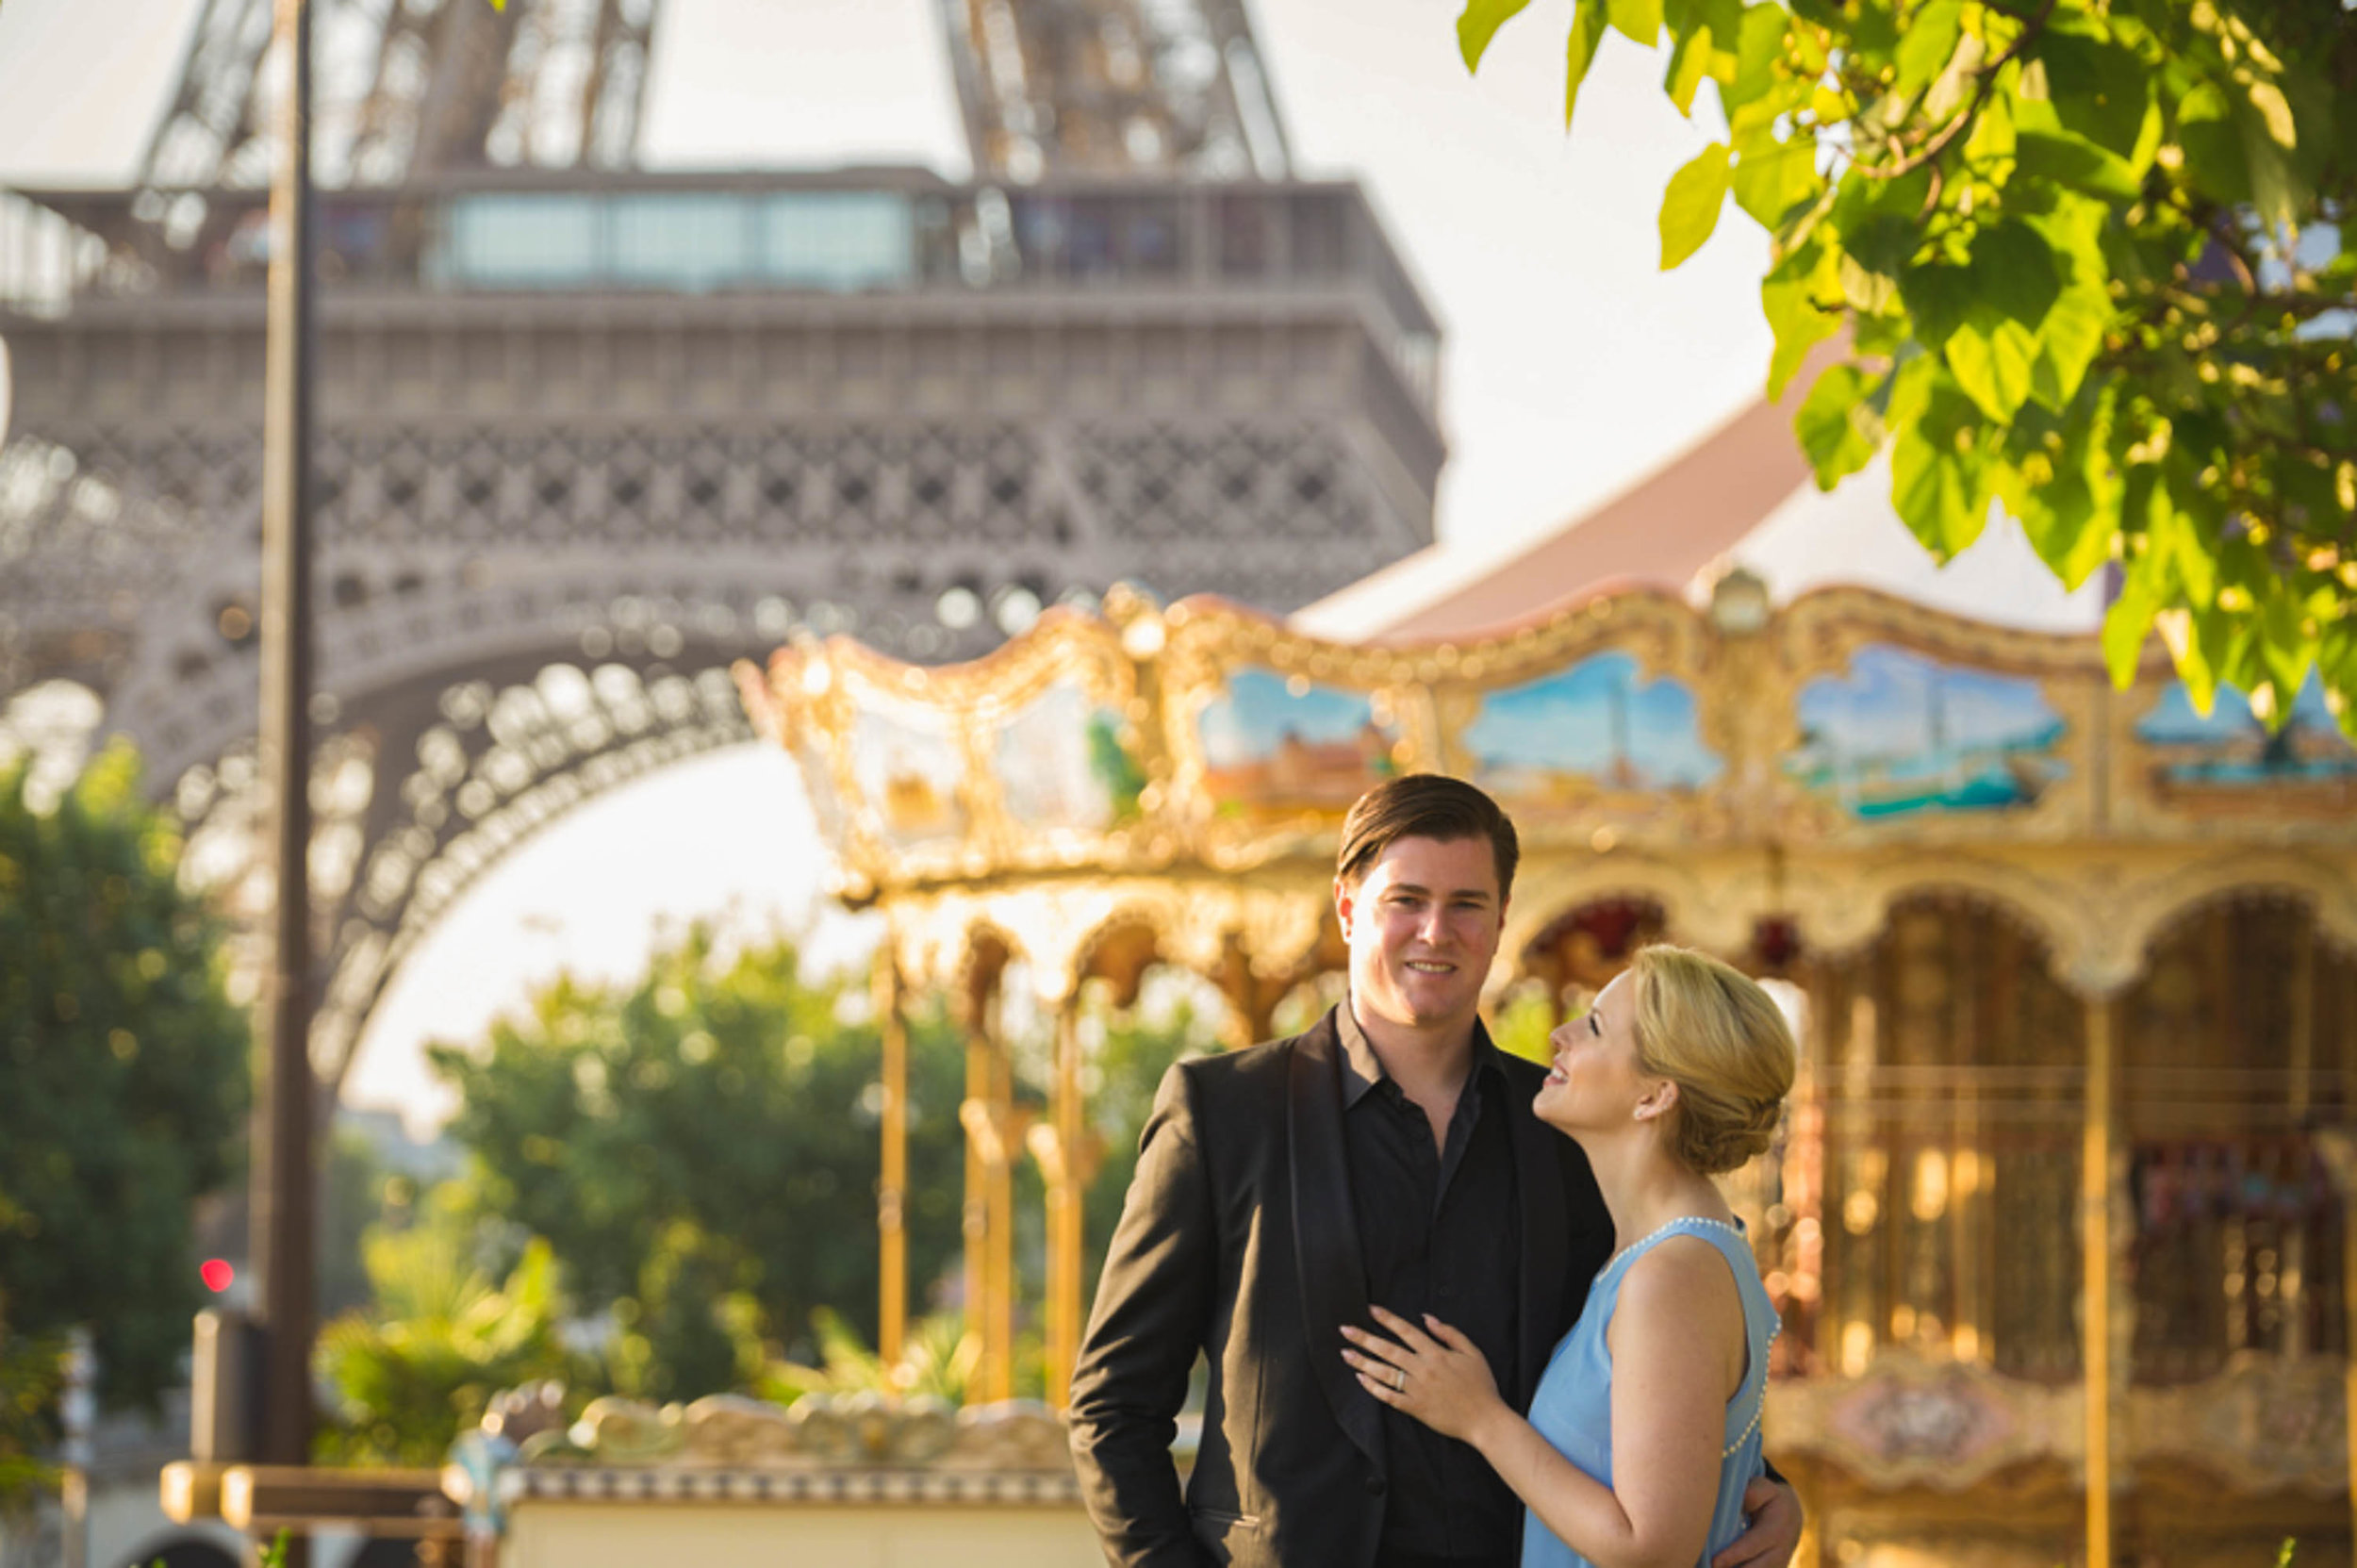 mykewilkenphotography.com engagement-20.jpg